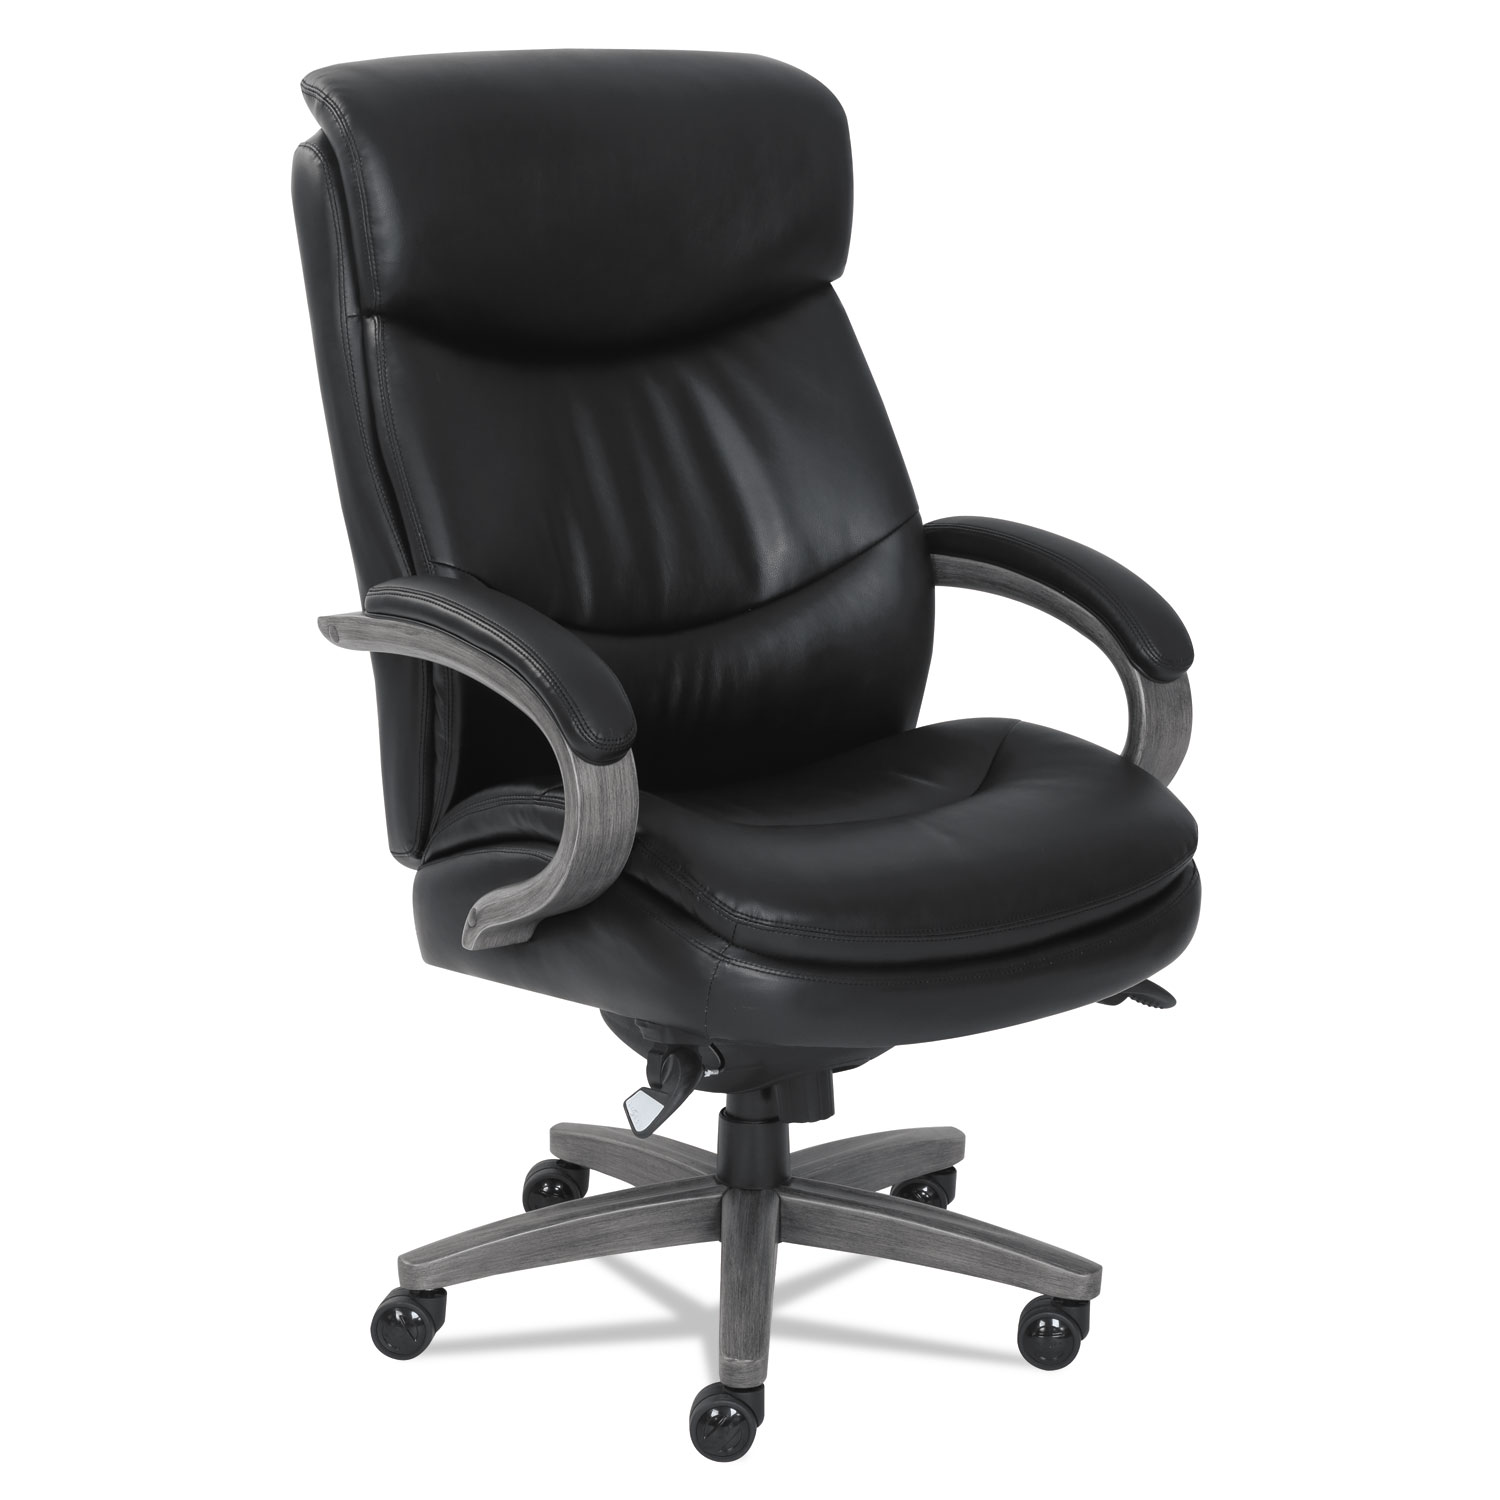 la z boy martin big and tall executive office chair brown cover hire forest of dean woodbury by